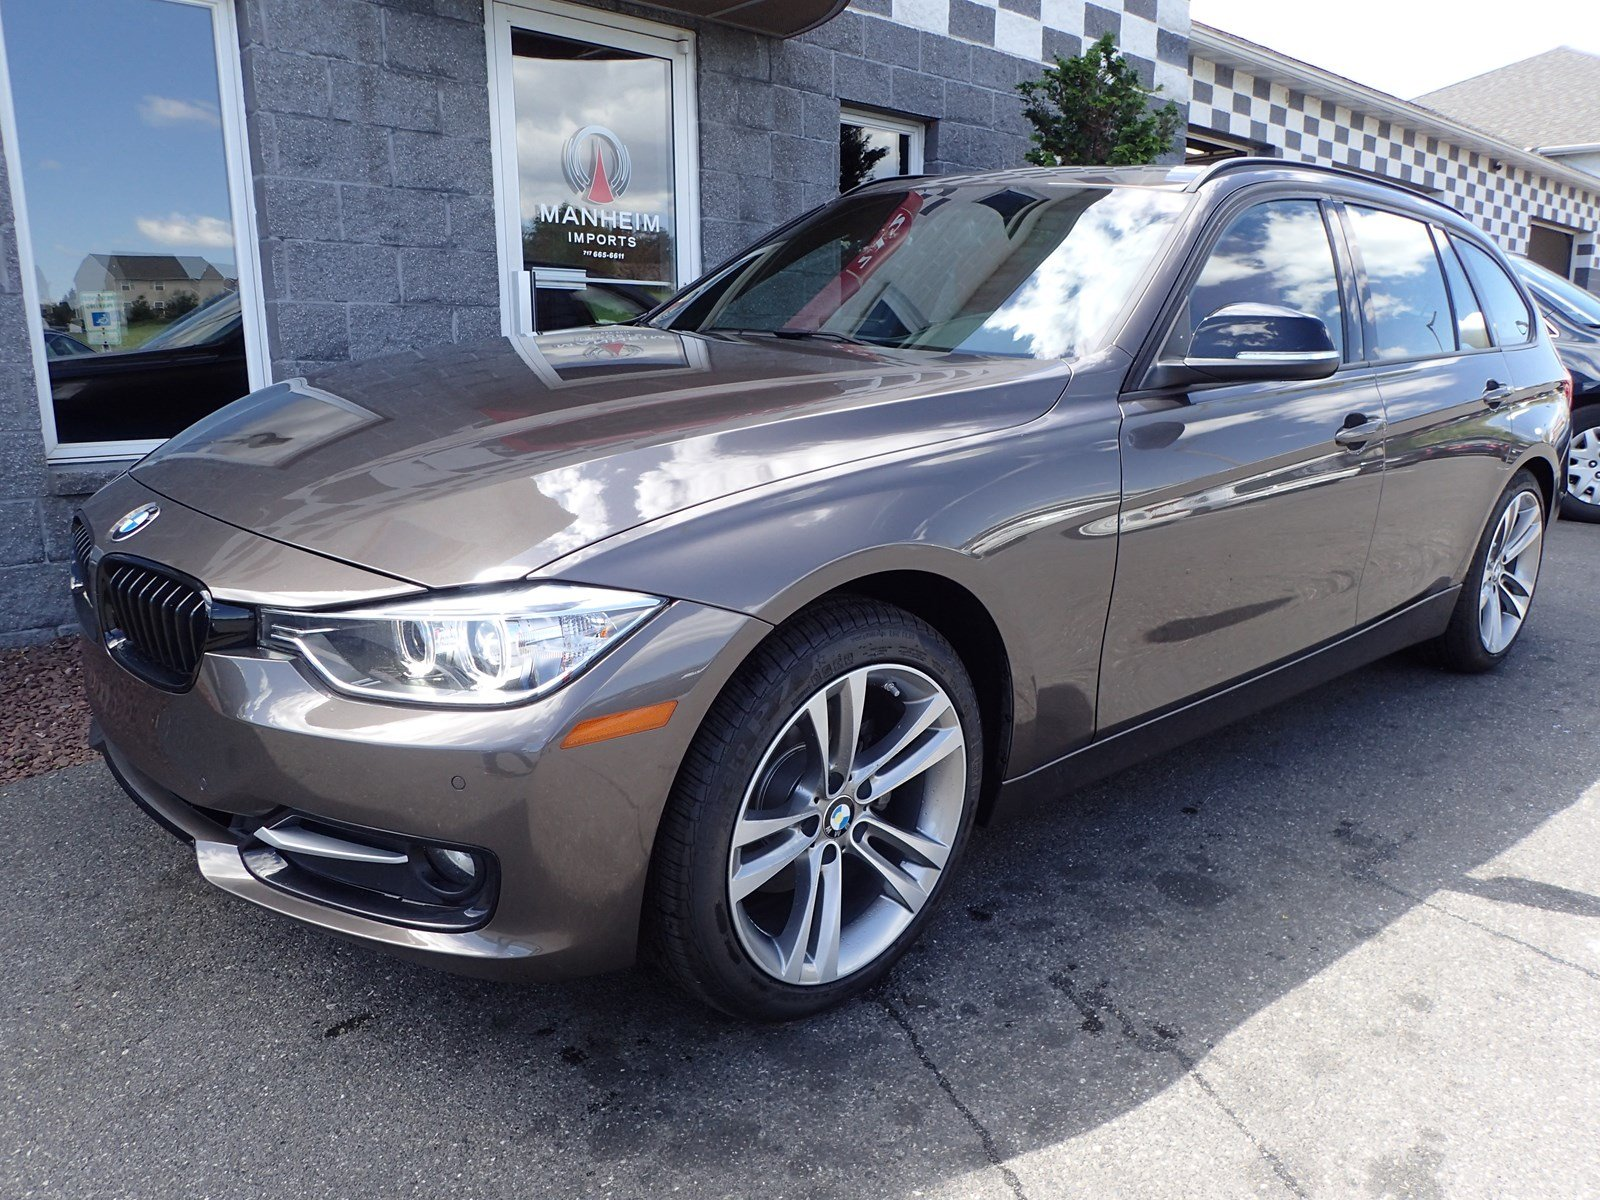 pre owned 2014 bmw 328d xdrive sports wagon sport line station wagon in manheim 300008. Black Bedroom Furniture Sets. Home Design Ideas